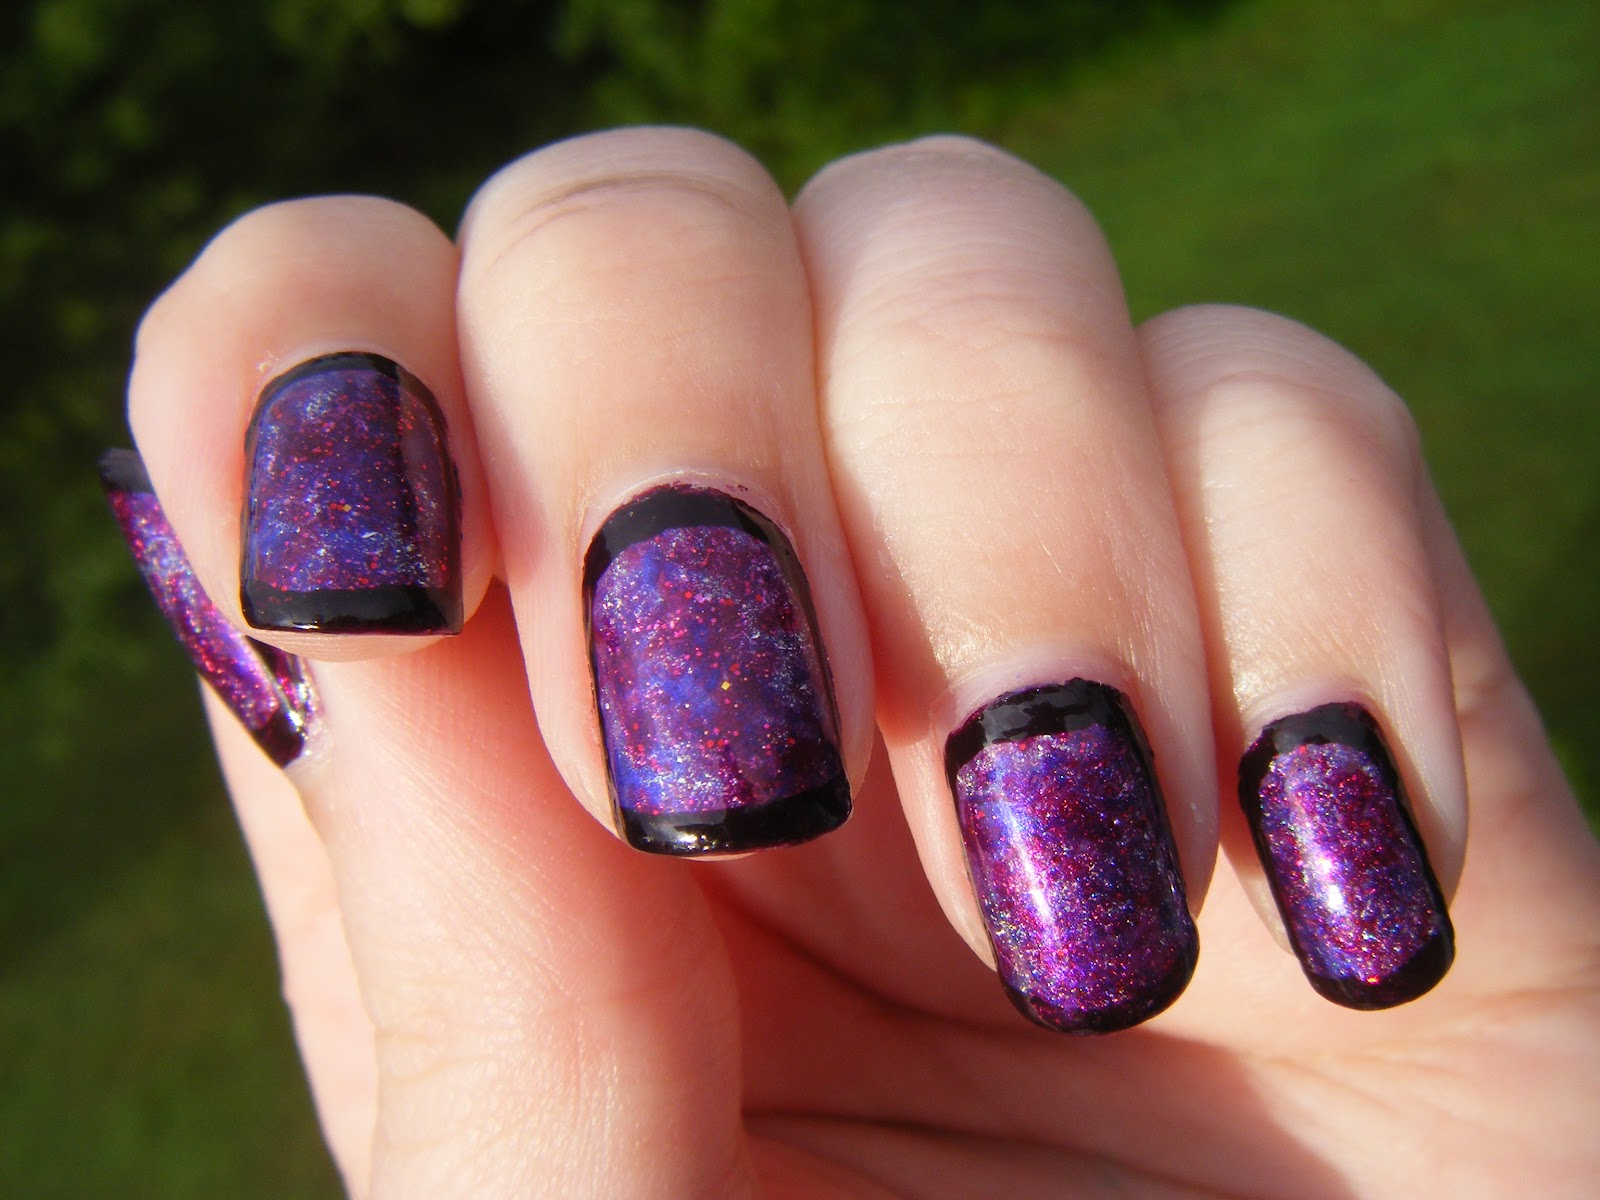 Starlight Radiance: Purple Monochromatic Nails (Very Picture Heavy)